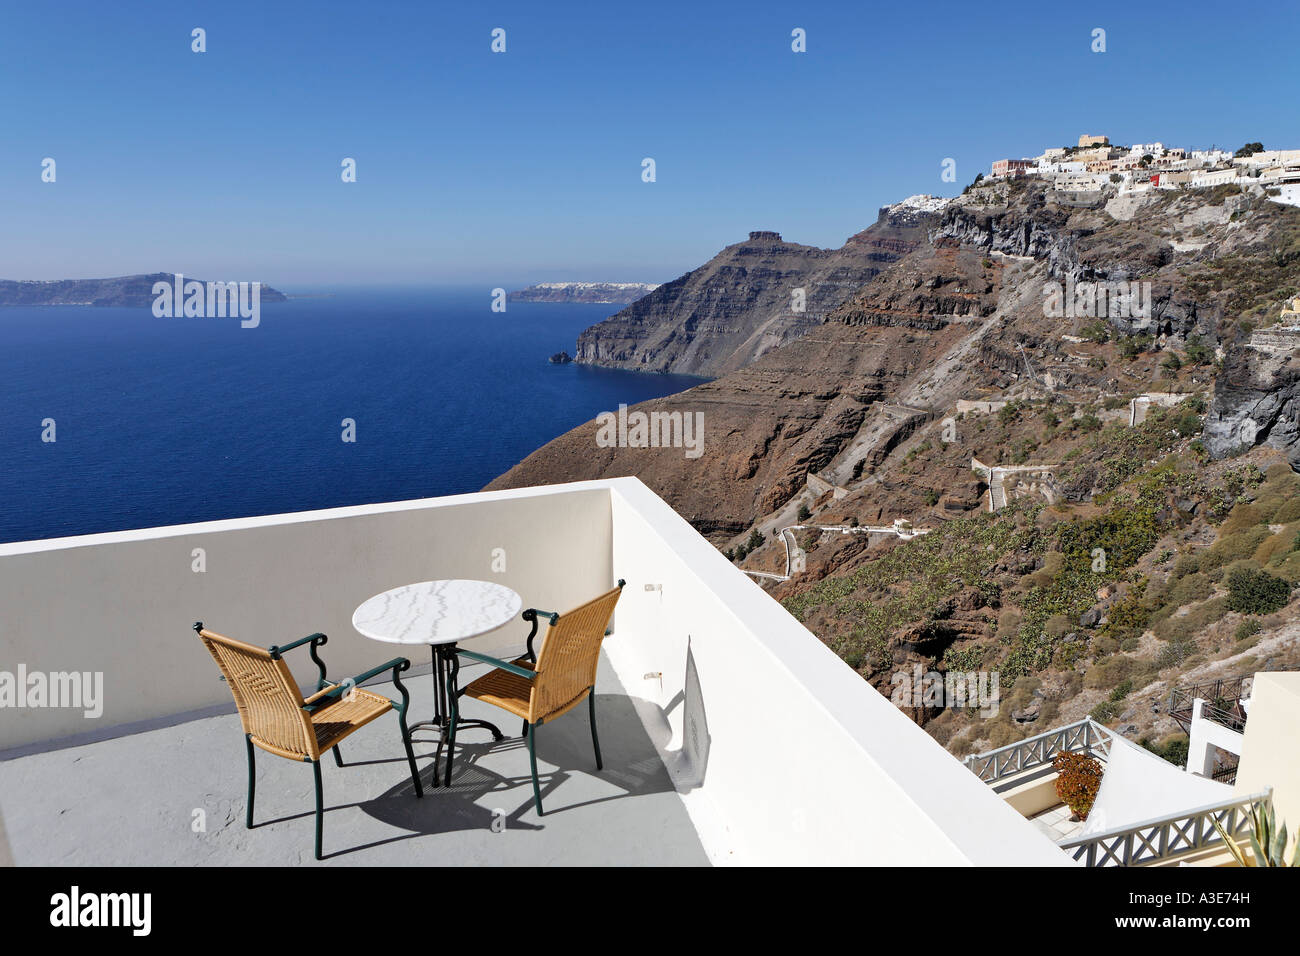 A nice place for breakfast with a fantastic view, Thira, Santorini, Greece - Stock Image